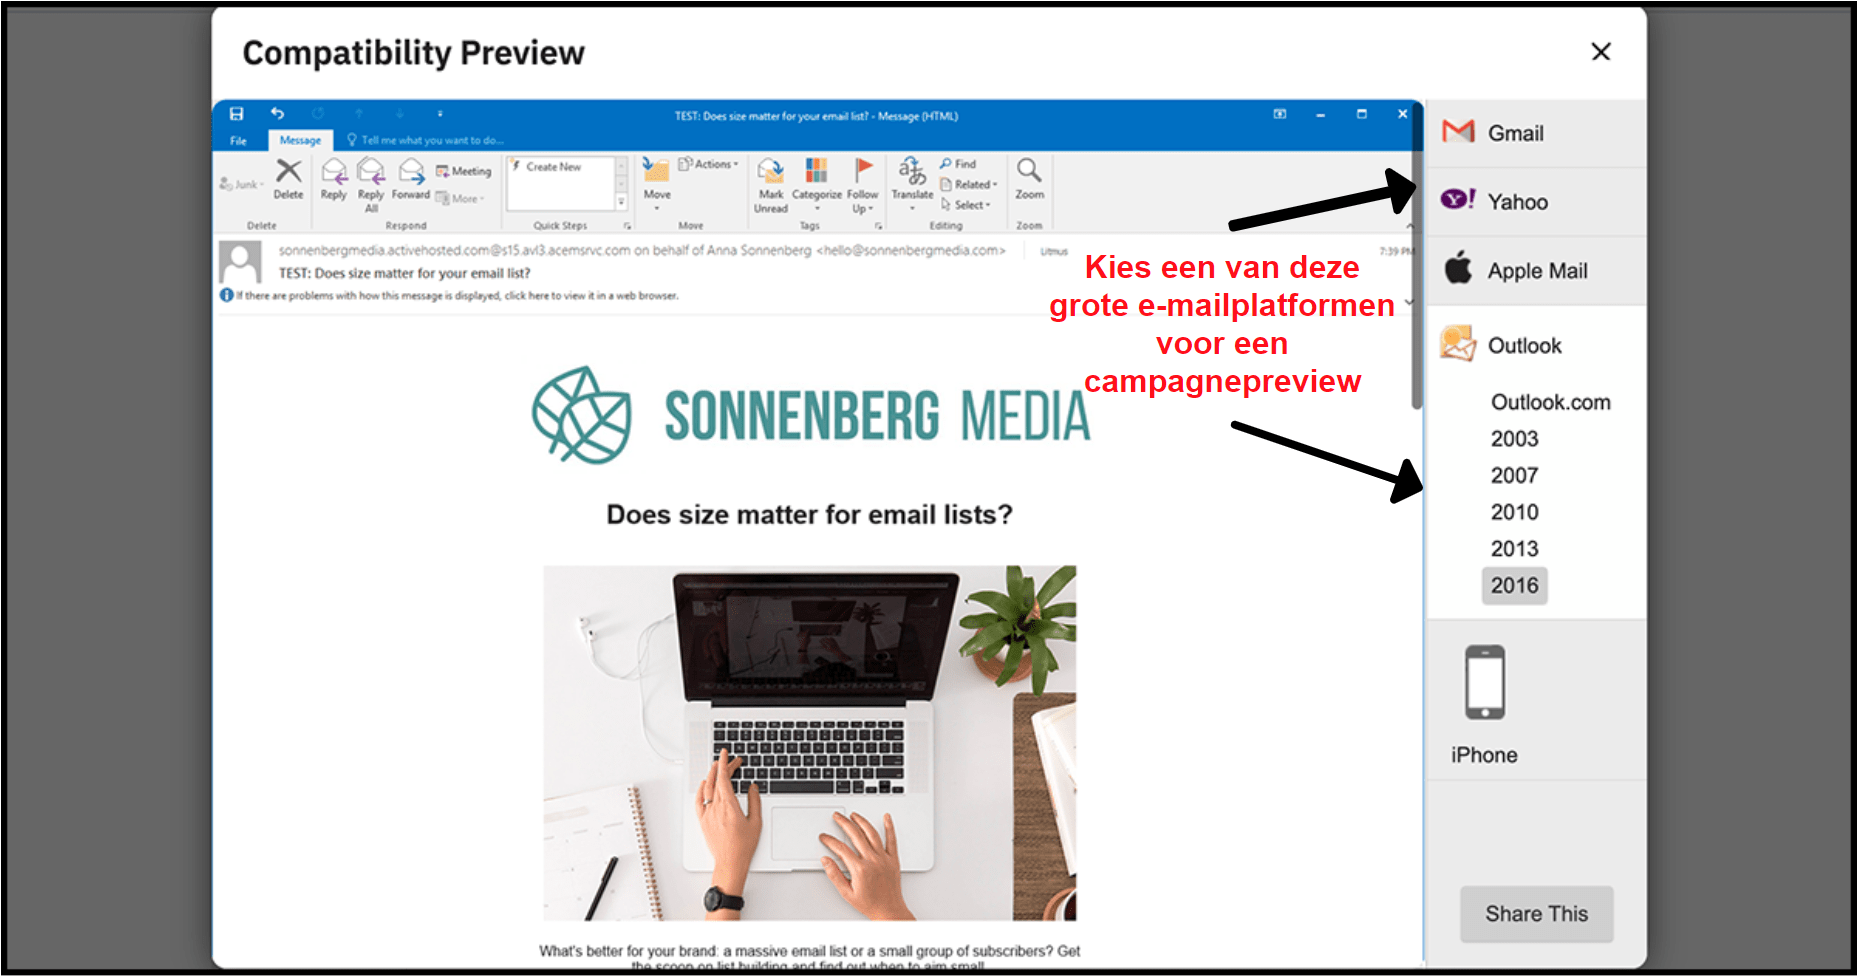 ActiveCampaign email compatibility preview